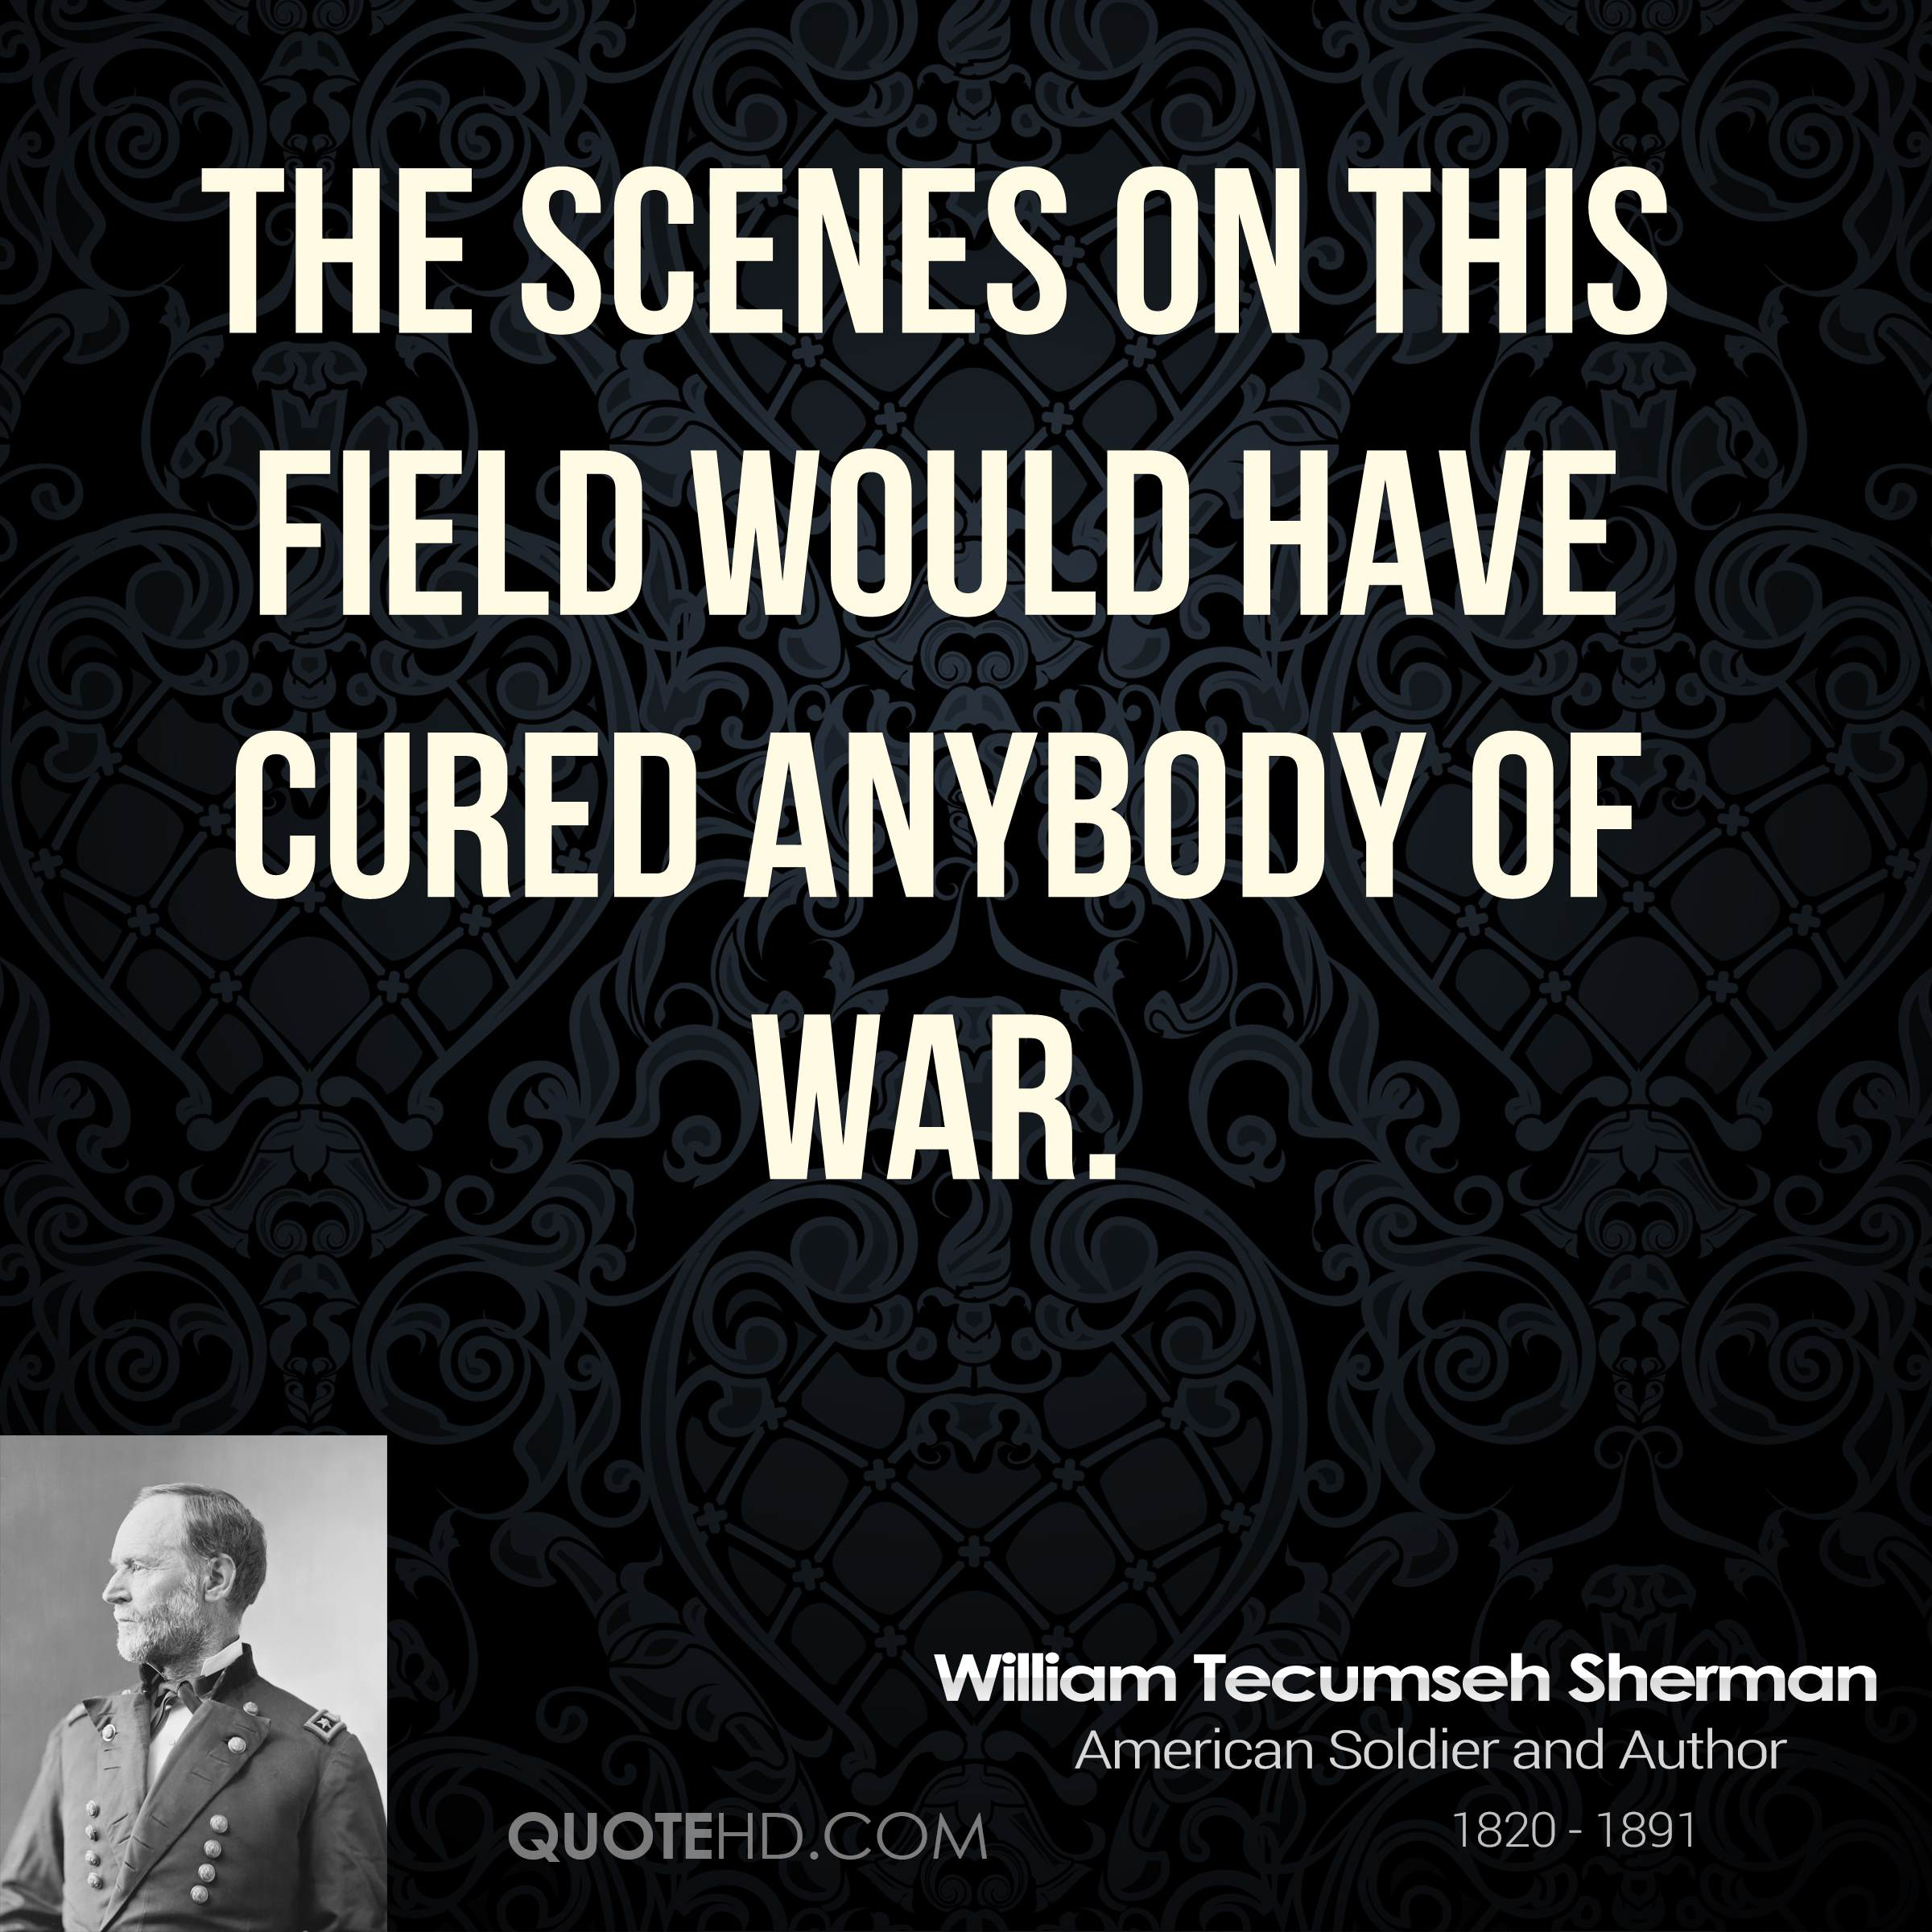 The scenes on this field would have cured anybody of war.